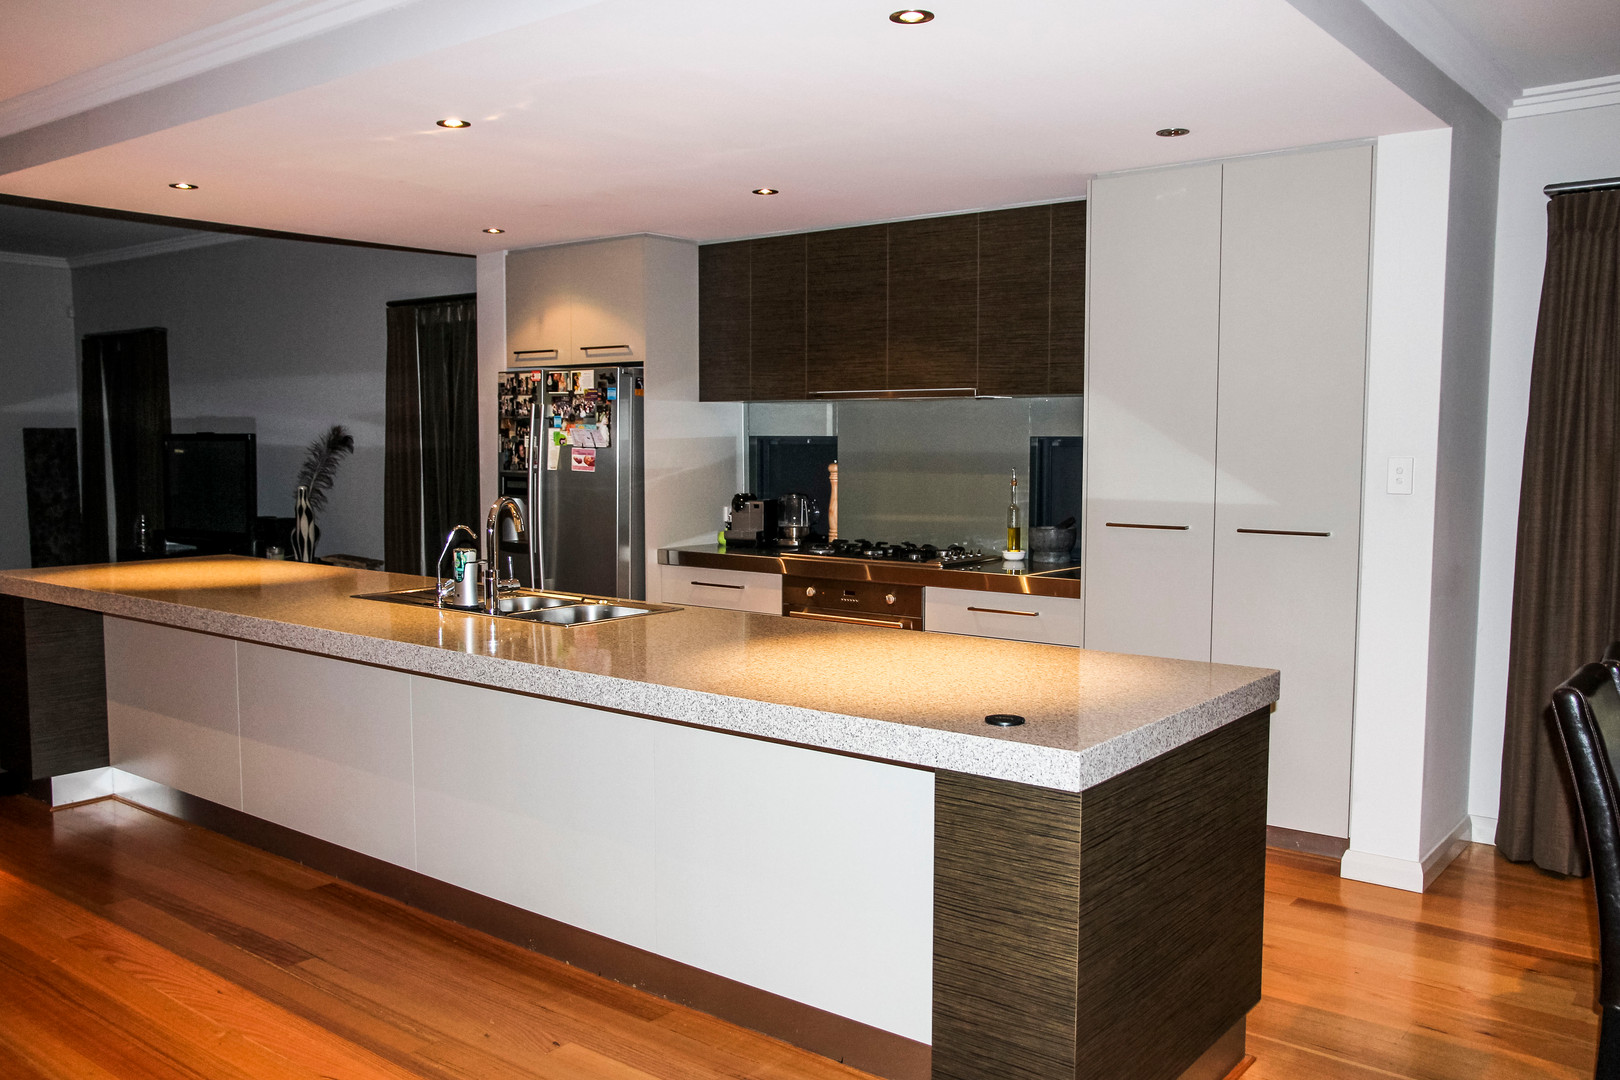 cooleys cabinets perth_perth kitchen ren